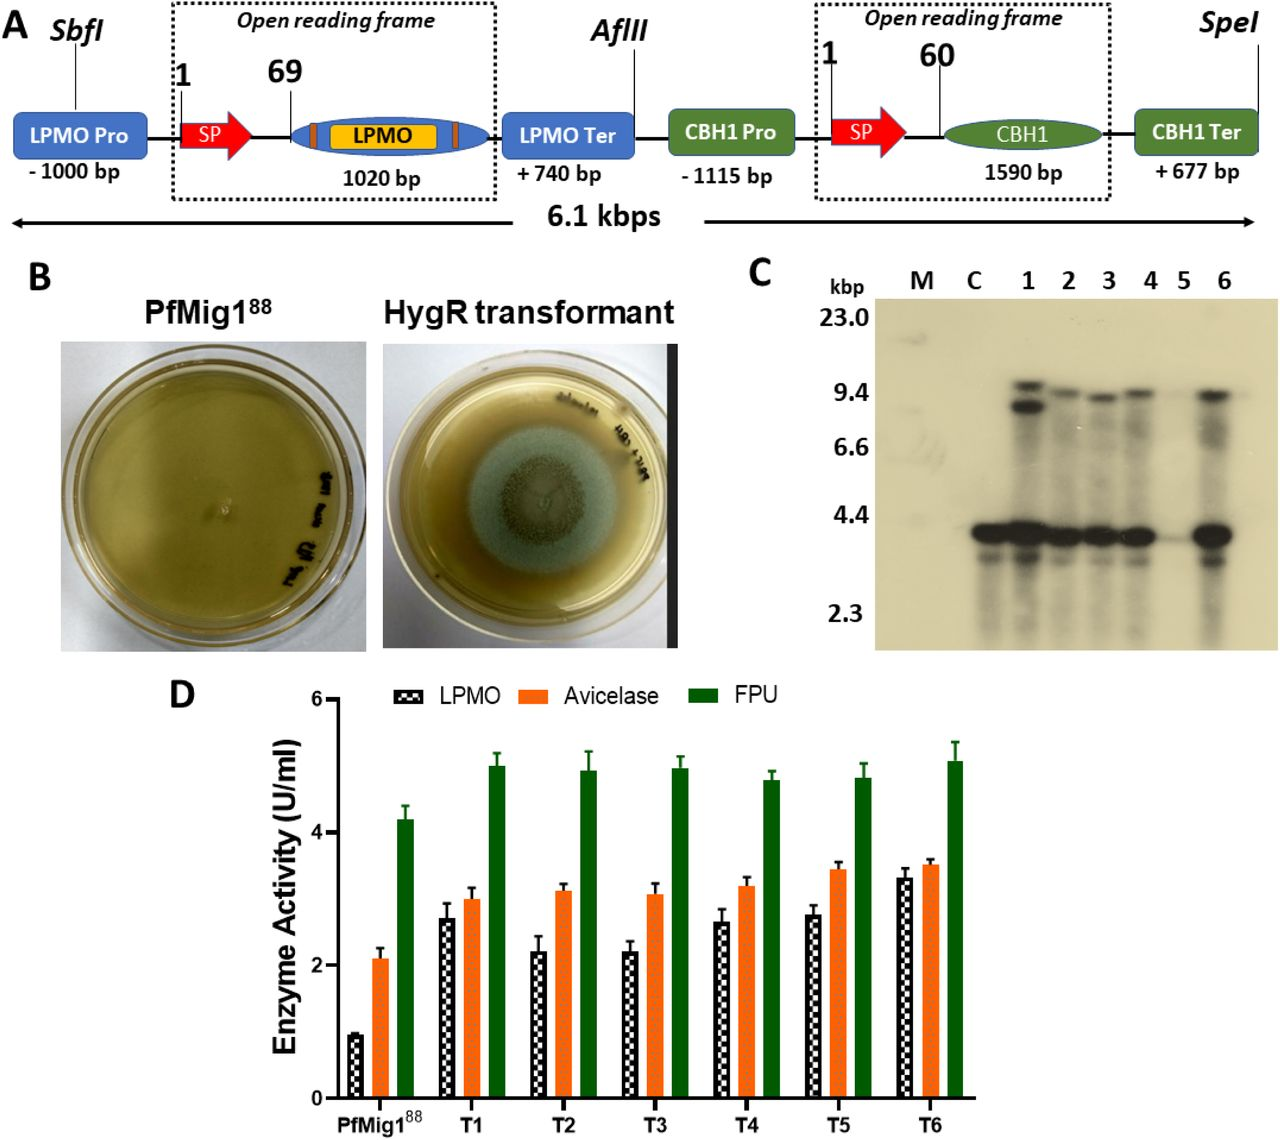 Simultaneous overexpression of LPMO and CBH1 in Pf Mig1 88 . (A) Schematic diagram showing the construction cassette for dual overexpression of LPMO and CBH1 genes from P. funiculosum NCIM1228. (B) Transformants of pOAO5 after AMTM transformation in Pf Mig1 88 . Transformants were selected on 100 µg/ml hygromycin. (C) Southern blot of transformants confirmed by <t>PCR.</t> M is HindIII lambda <t>DNA</t> size marker used; Lane C indicates genomic DNA of non-transformed parental strain; Lanes 1-5 represent genomic DNA from transformants with LPMO/CBH1 cassette integration; (D) The enzymatic profile of the overexpressed enzymes in the fermentation broth of Pf Mig1 88 and six transformants.